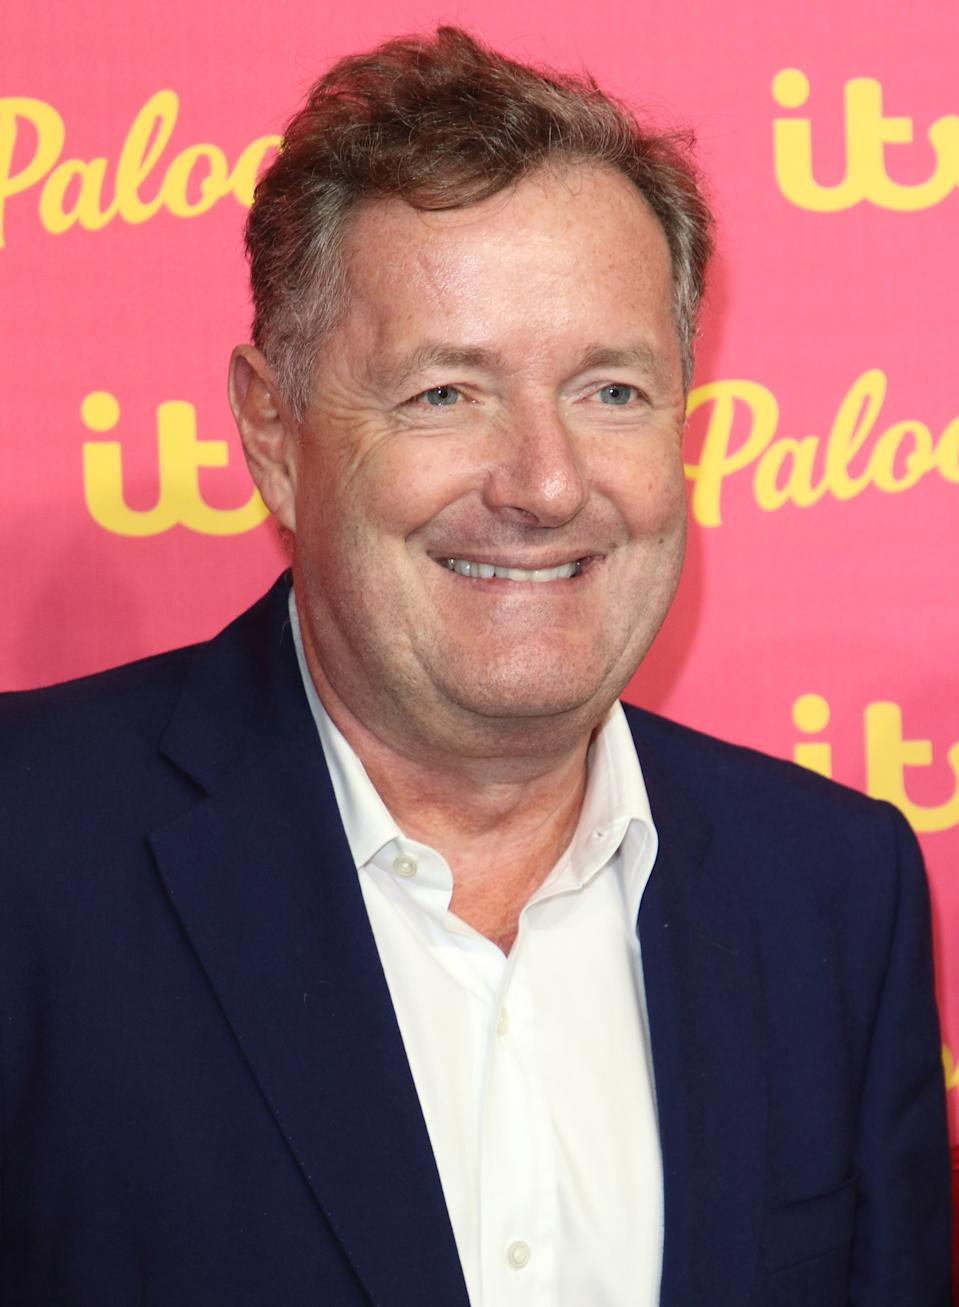 Piers Morgan at the ITV Palooza at the Royal Festival Hall, South Bank (Photo by Keith Mayhew / SOPA Images/Sipa USA)